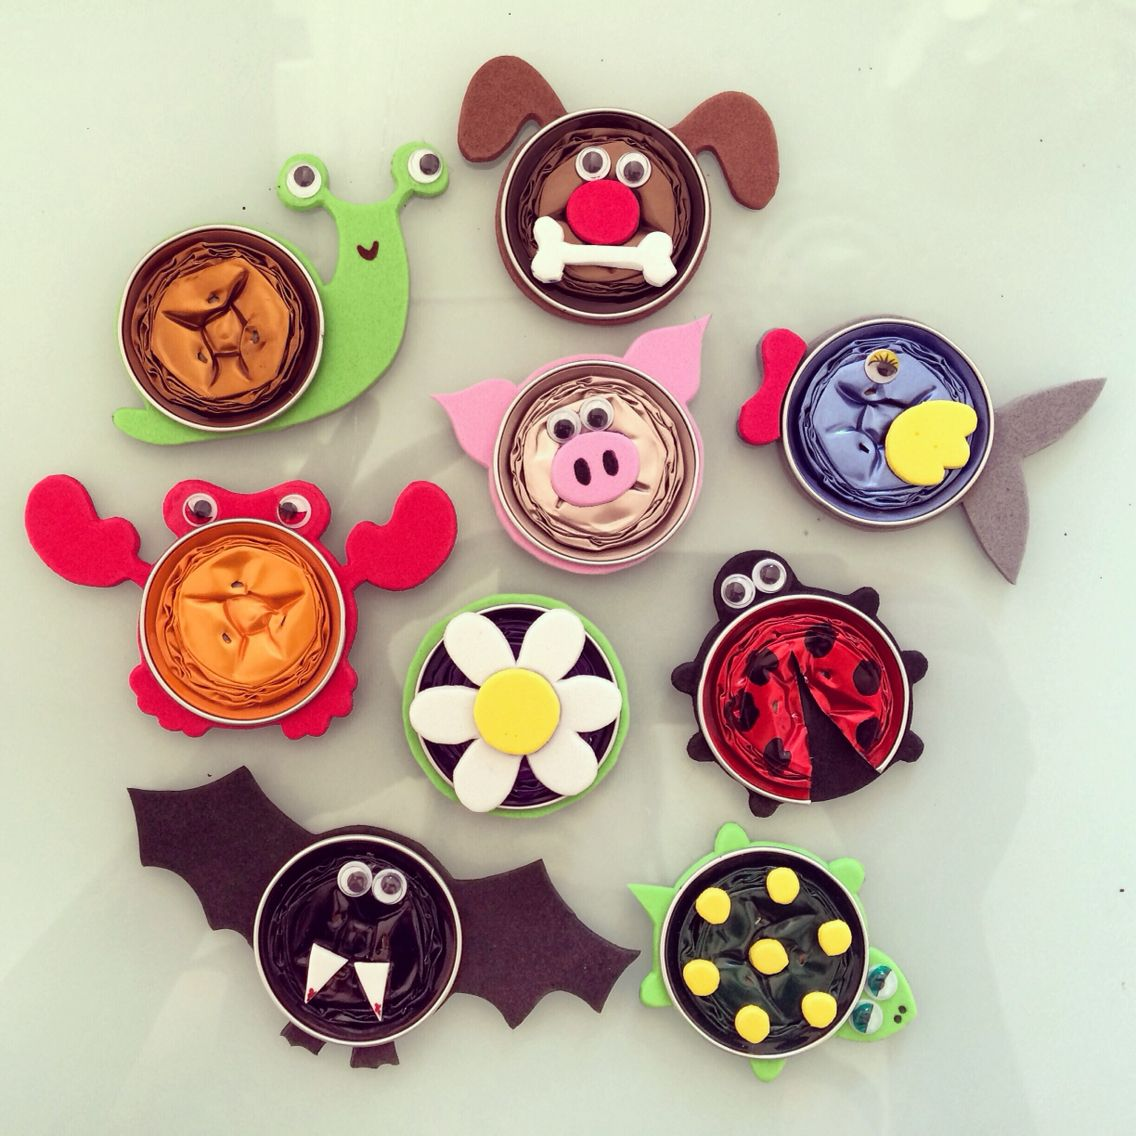 Populaire Animal fridge magnets made with recycled Nespresso capsules  GE79